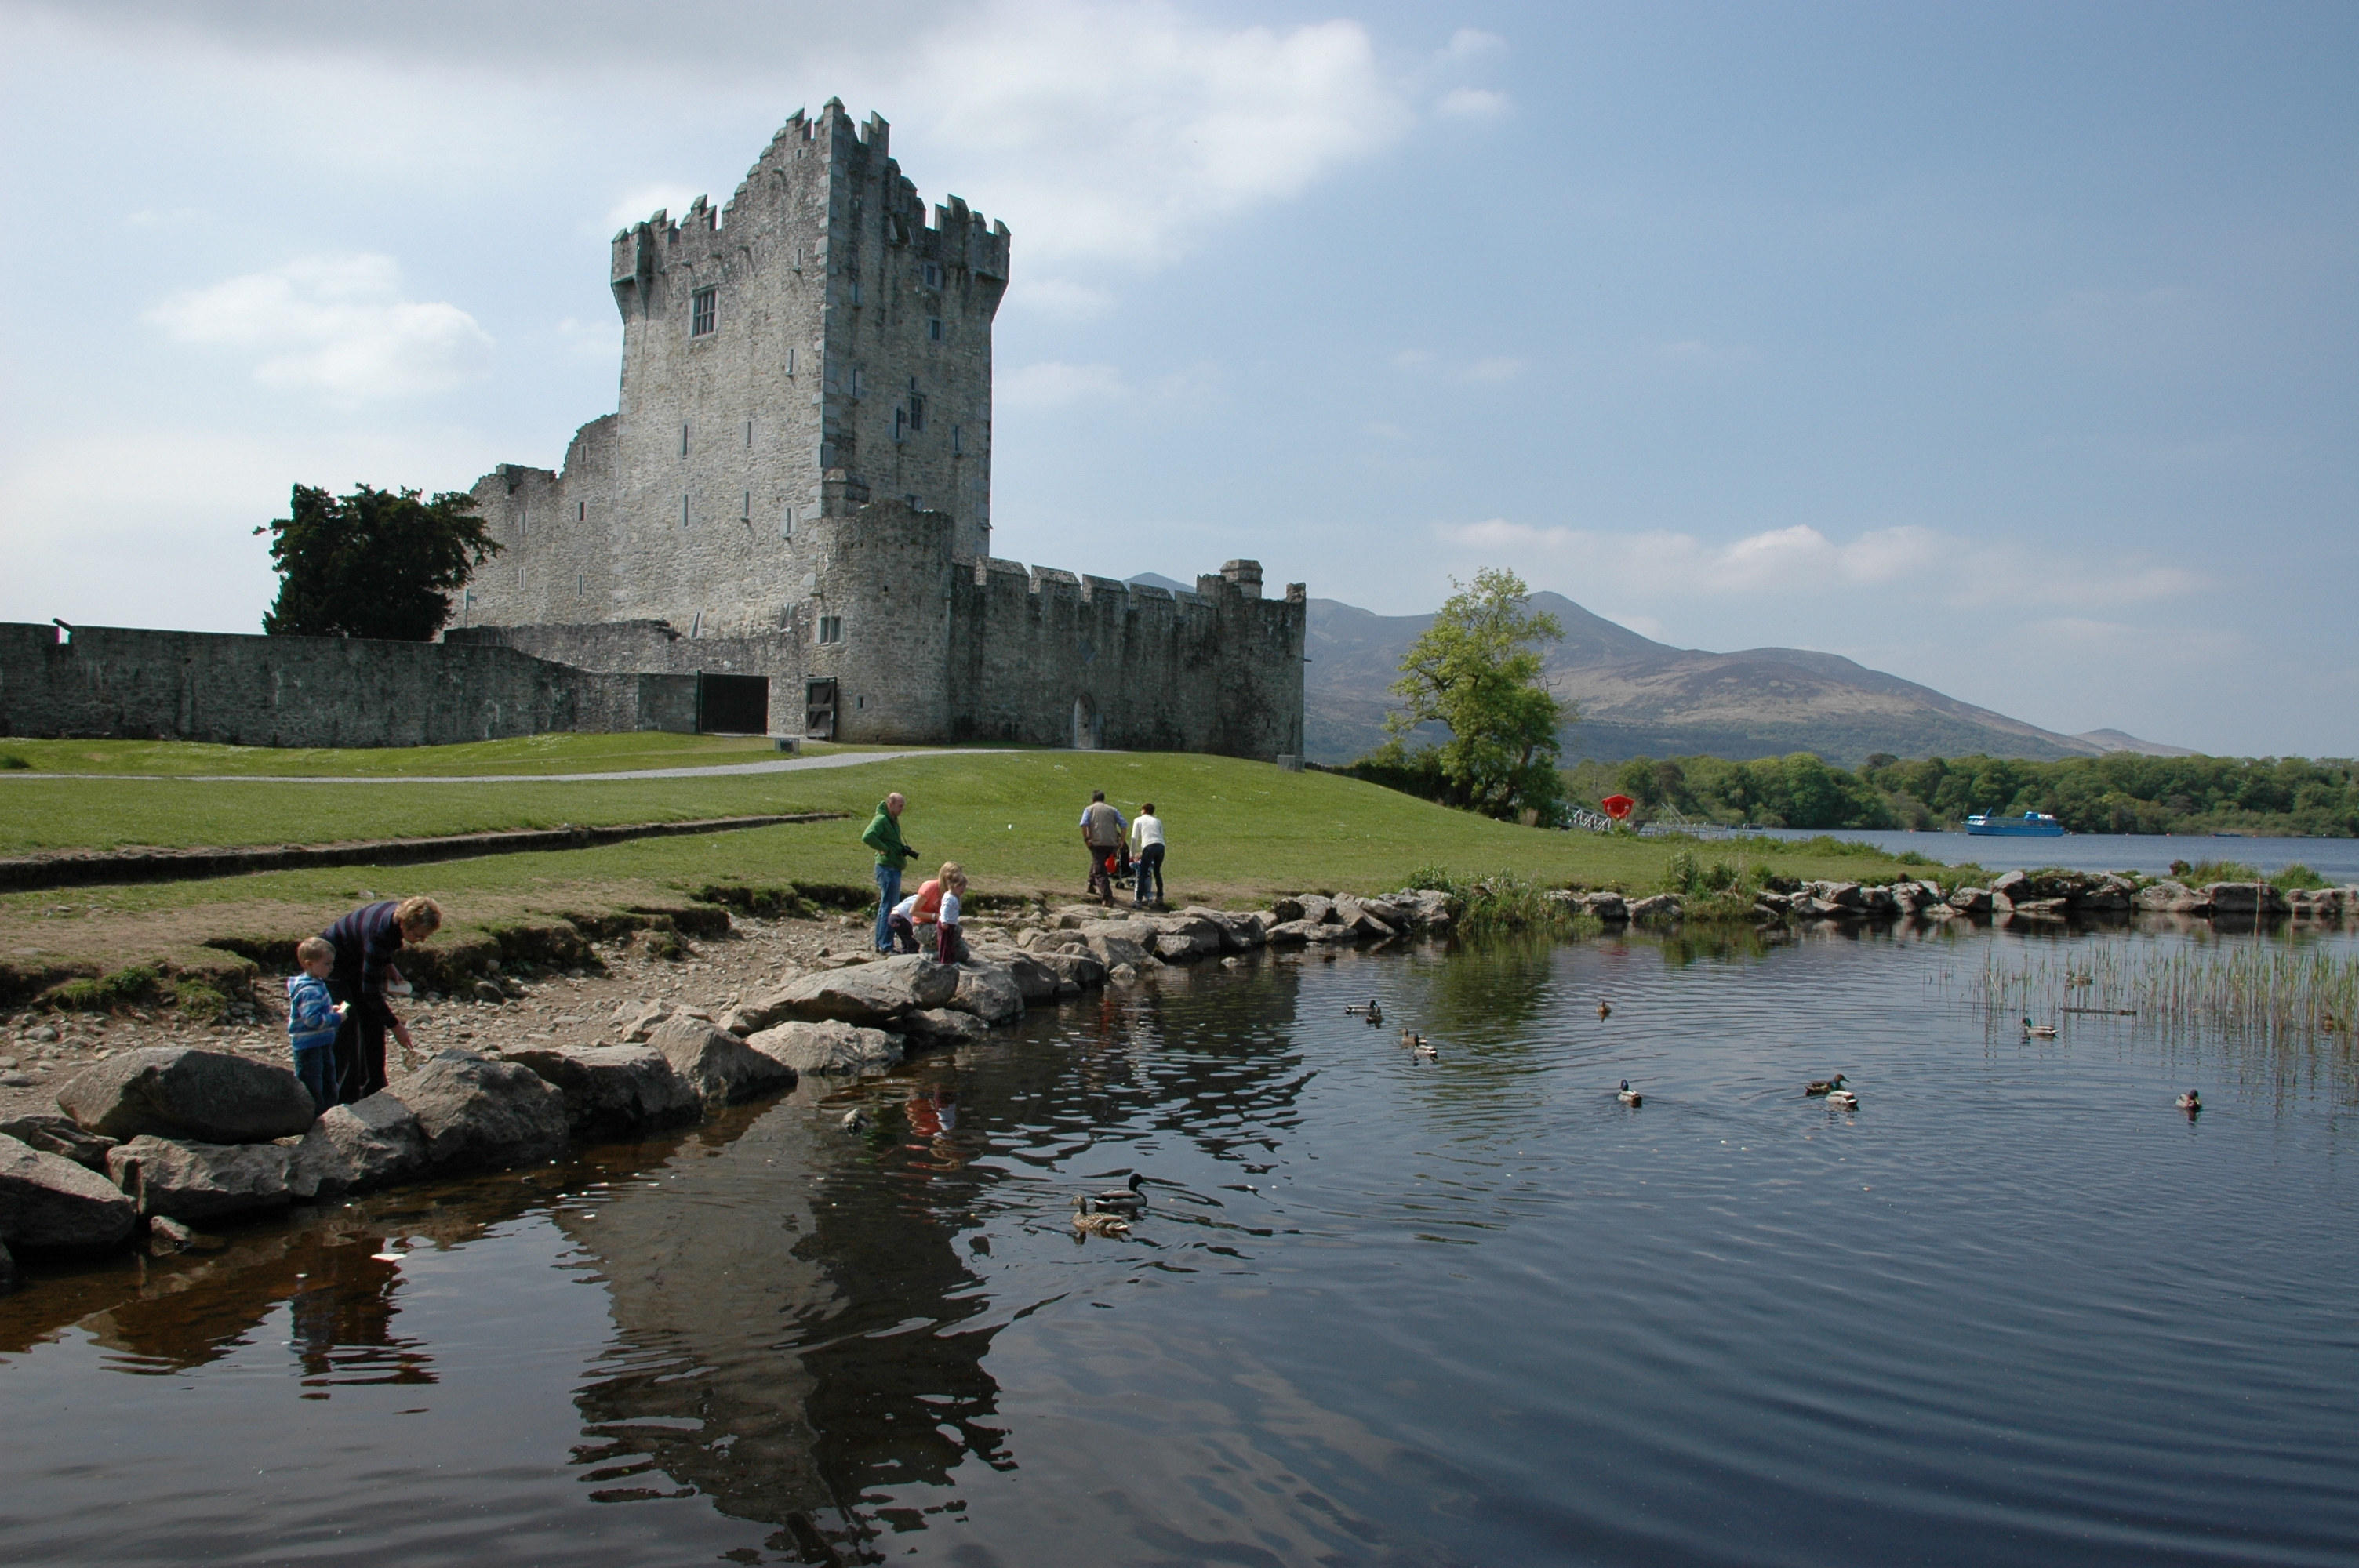 HERITAGE-DUCK FEEDING TIME BY ROSS CASTLE(J O'GRADY)